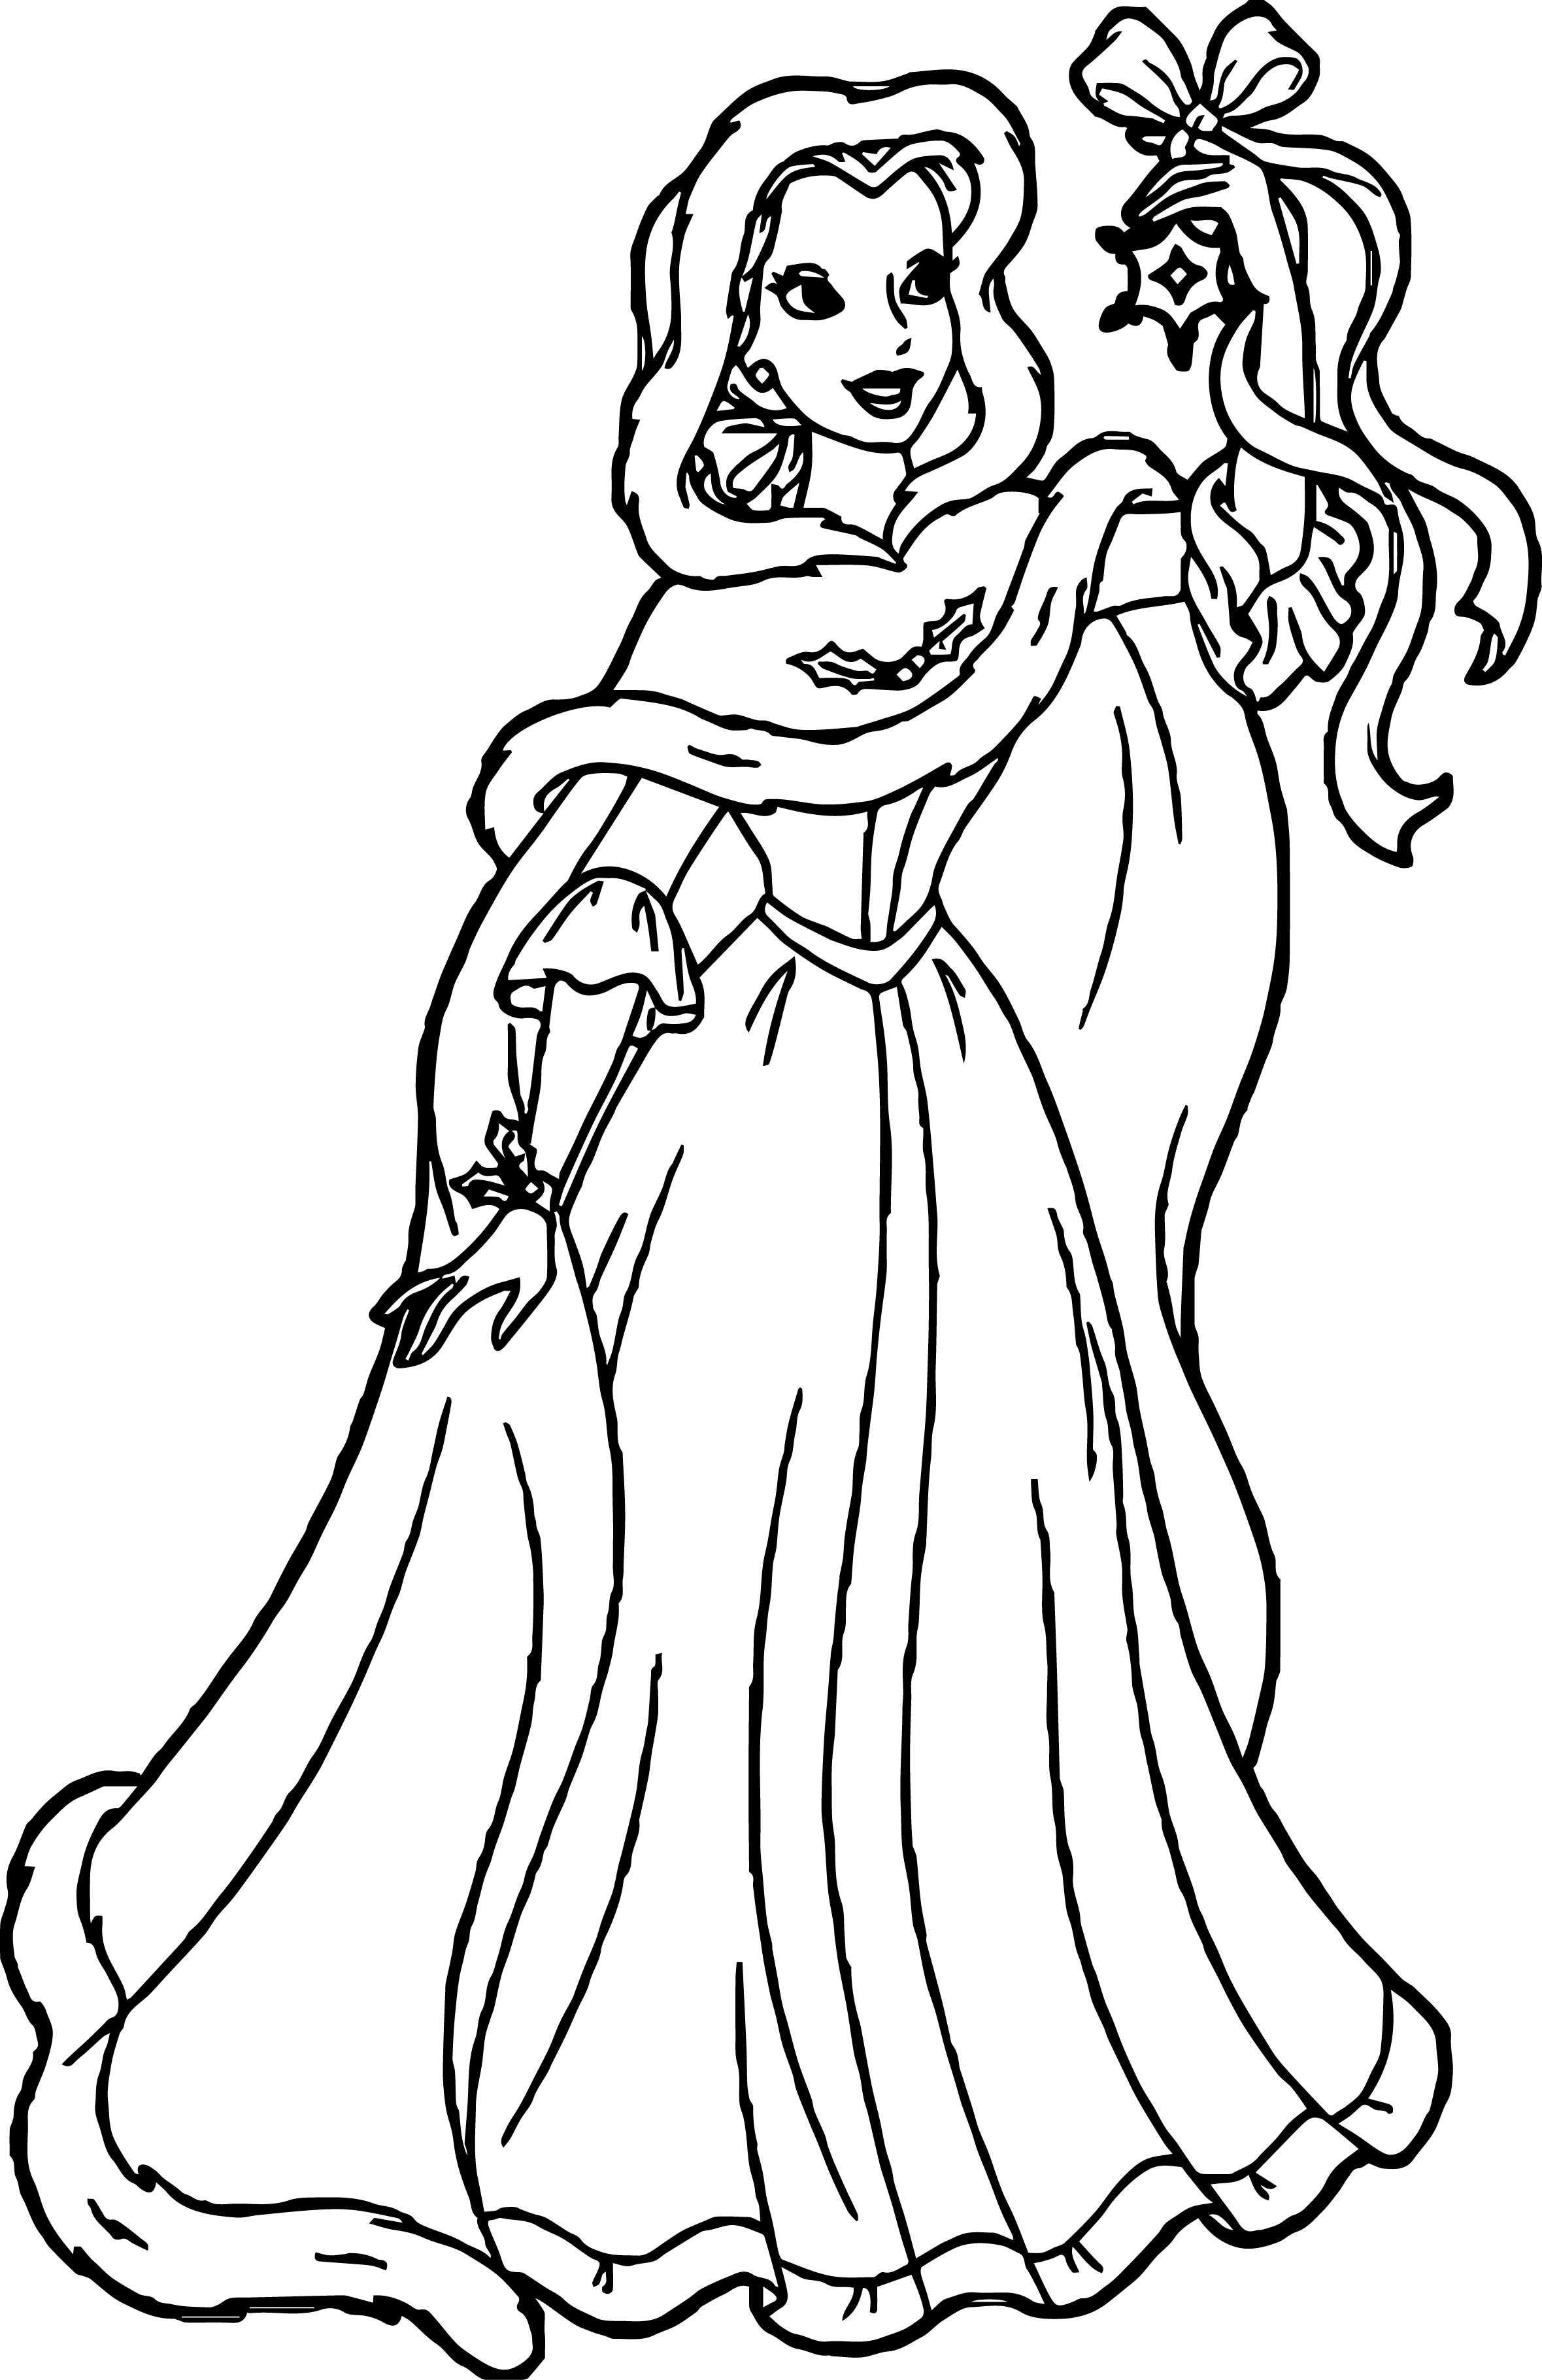 belle disney star princess coloring page wecoloringpage